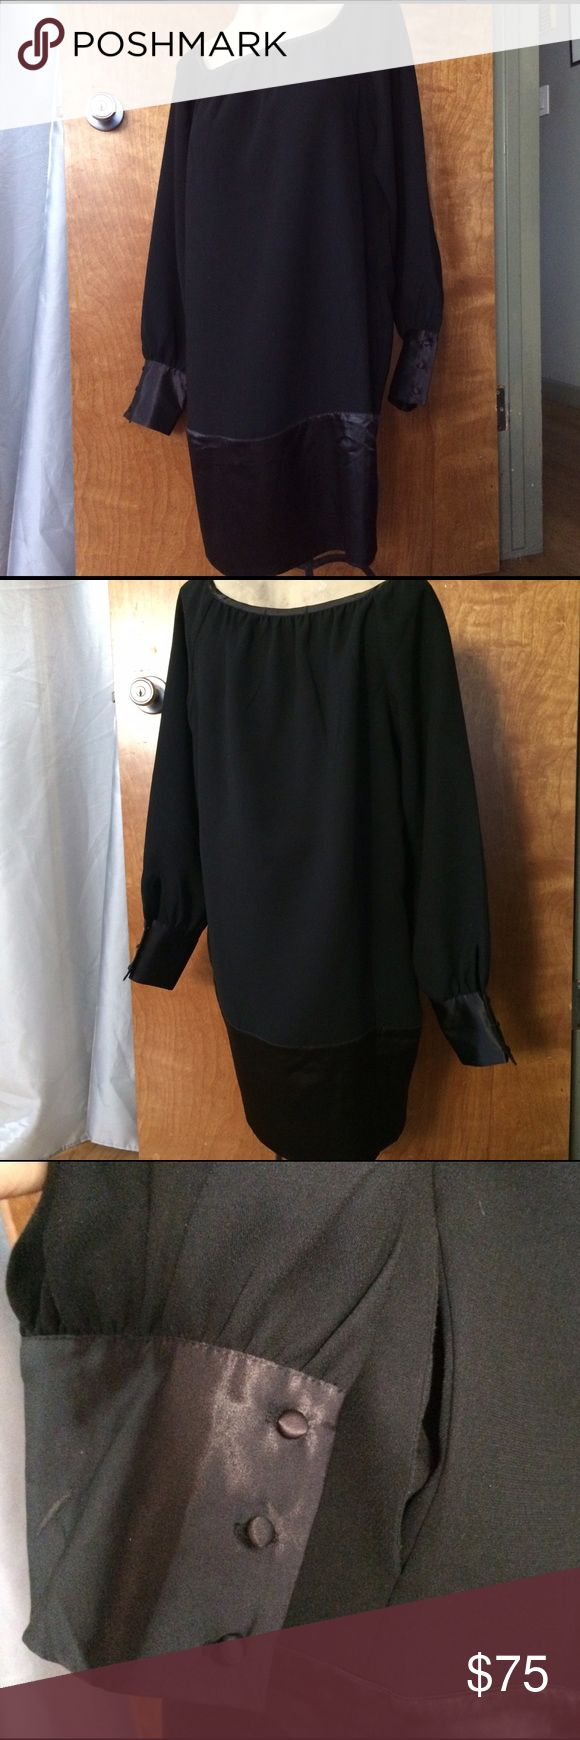 """Vertigo Paris Cocoon Dress The perfect """"hide belly"""" dress with side hidden pockets. 35"""" length. Can dress it up or down and very comfortable. Worn once. Looks absolutely new. Vertigo Paris Dresses Mini"""